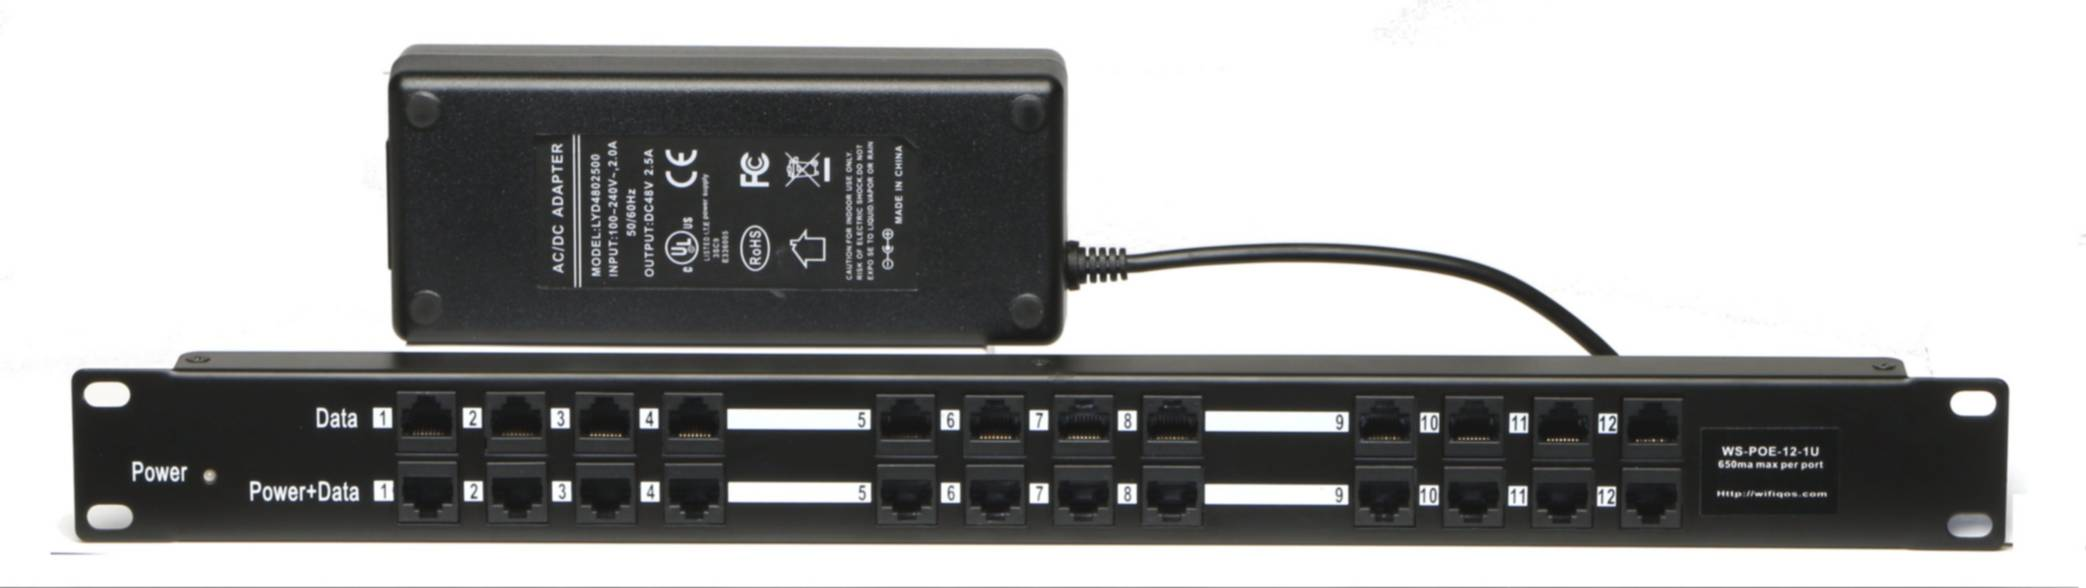 WS-POE-12 with Power Supply